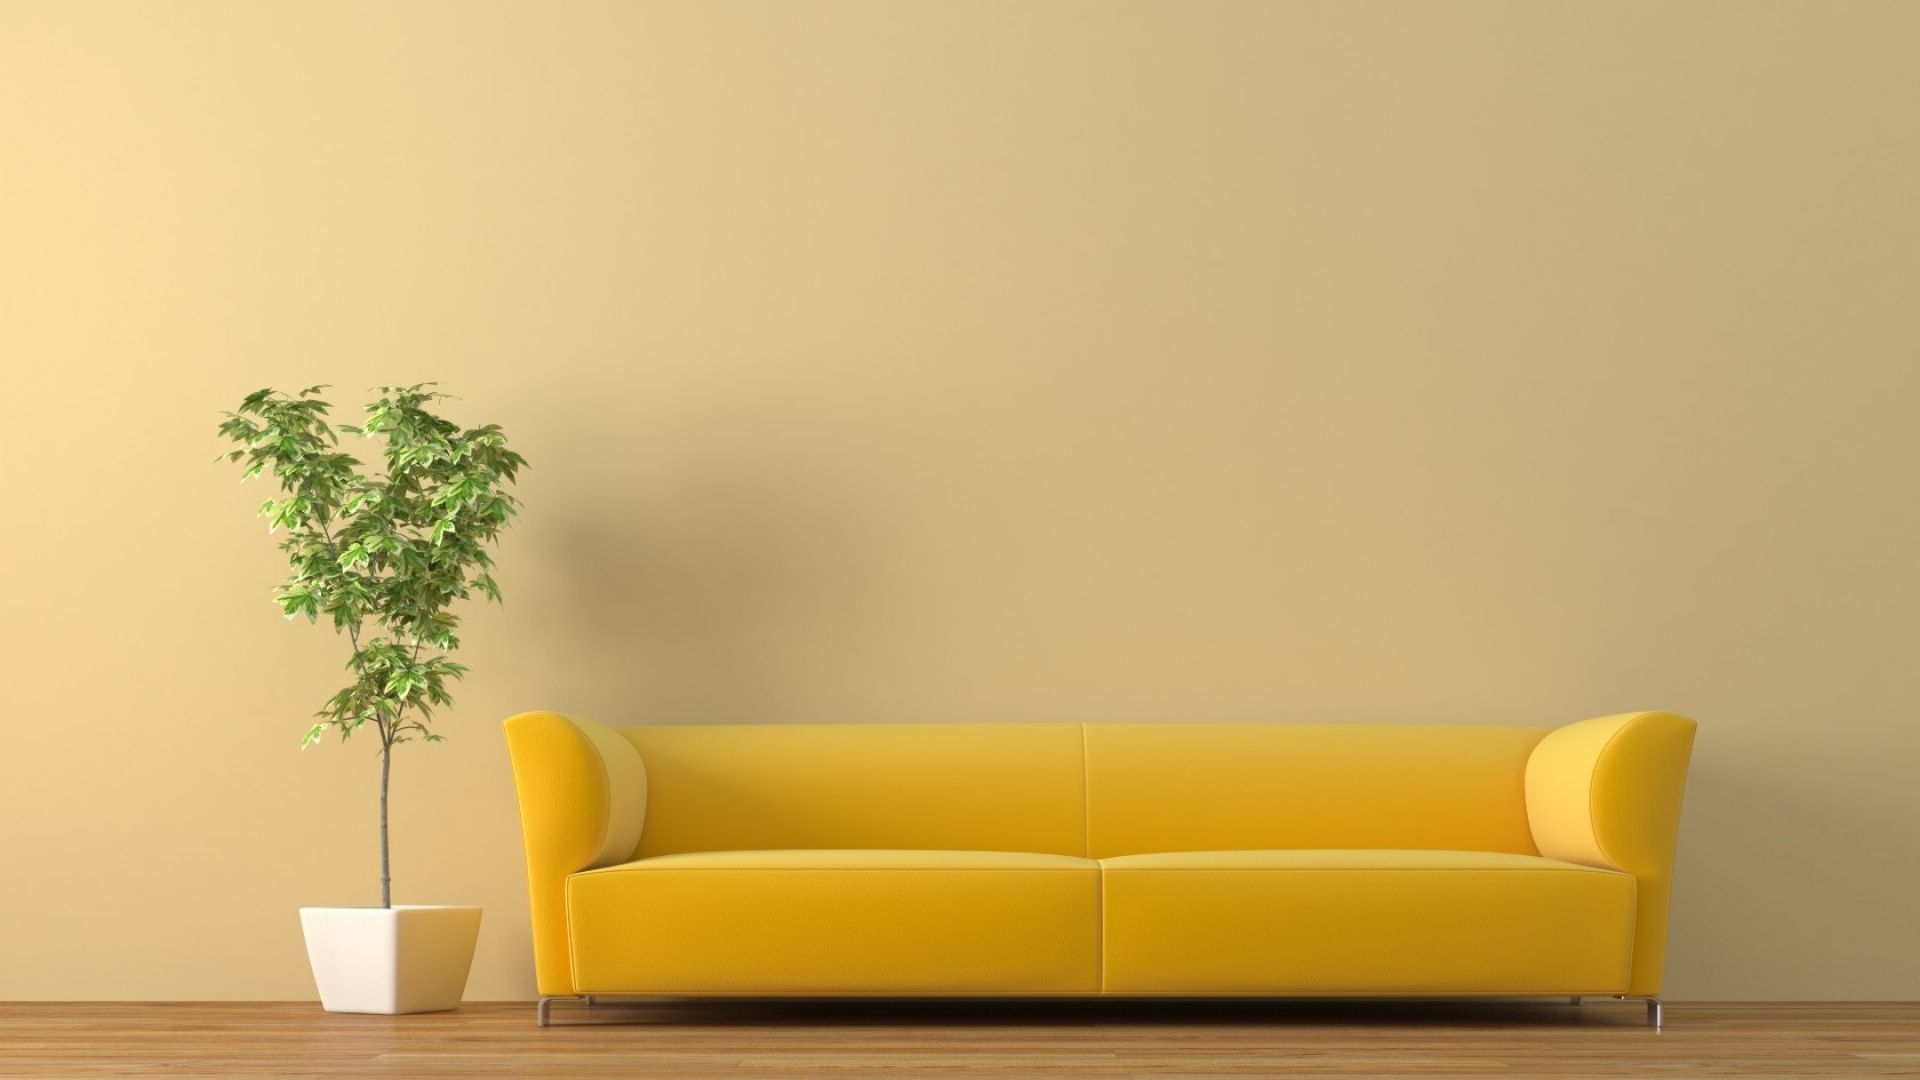 1920x1080 Wallpaper sofa tub plant   background for showing 1920x1080